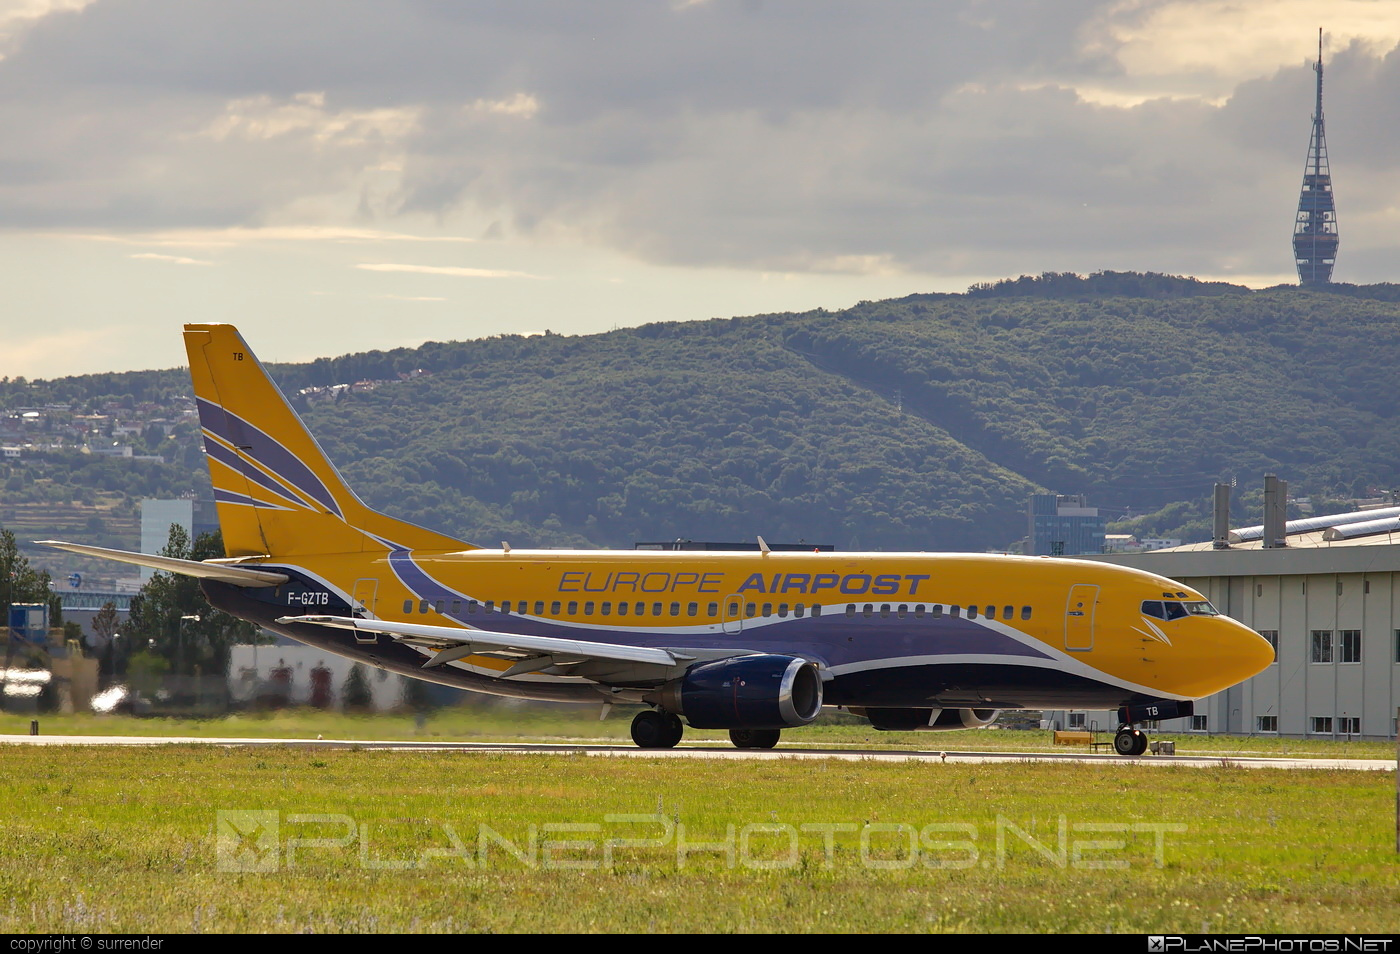 Boeing 737-300QC - F-GZTB operated by Europe Airpost #b737 #b737qc #boeing #boeing737